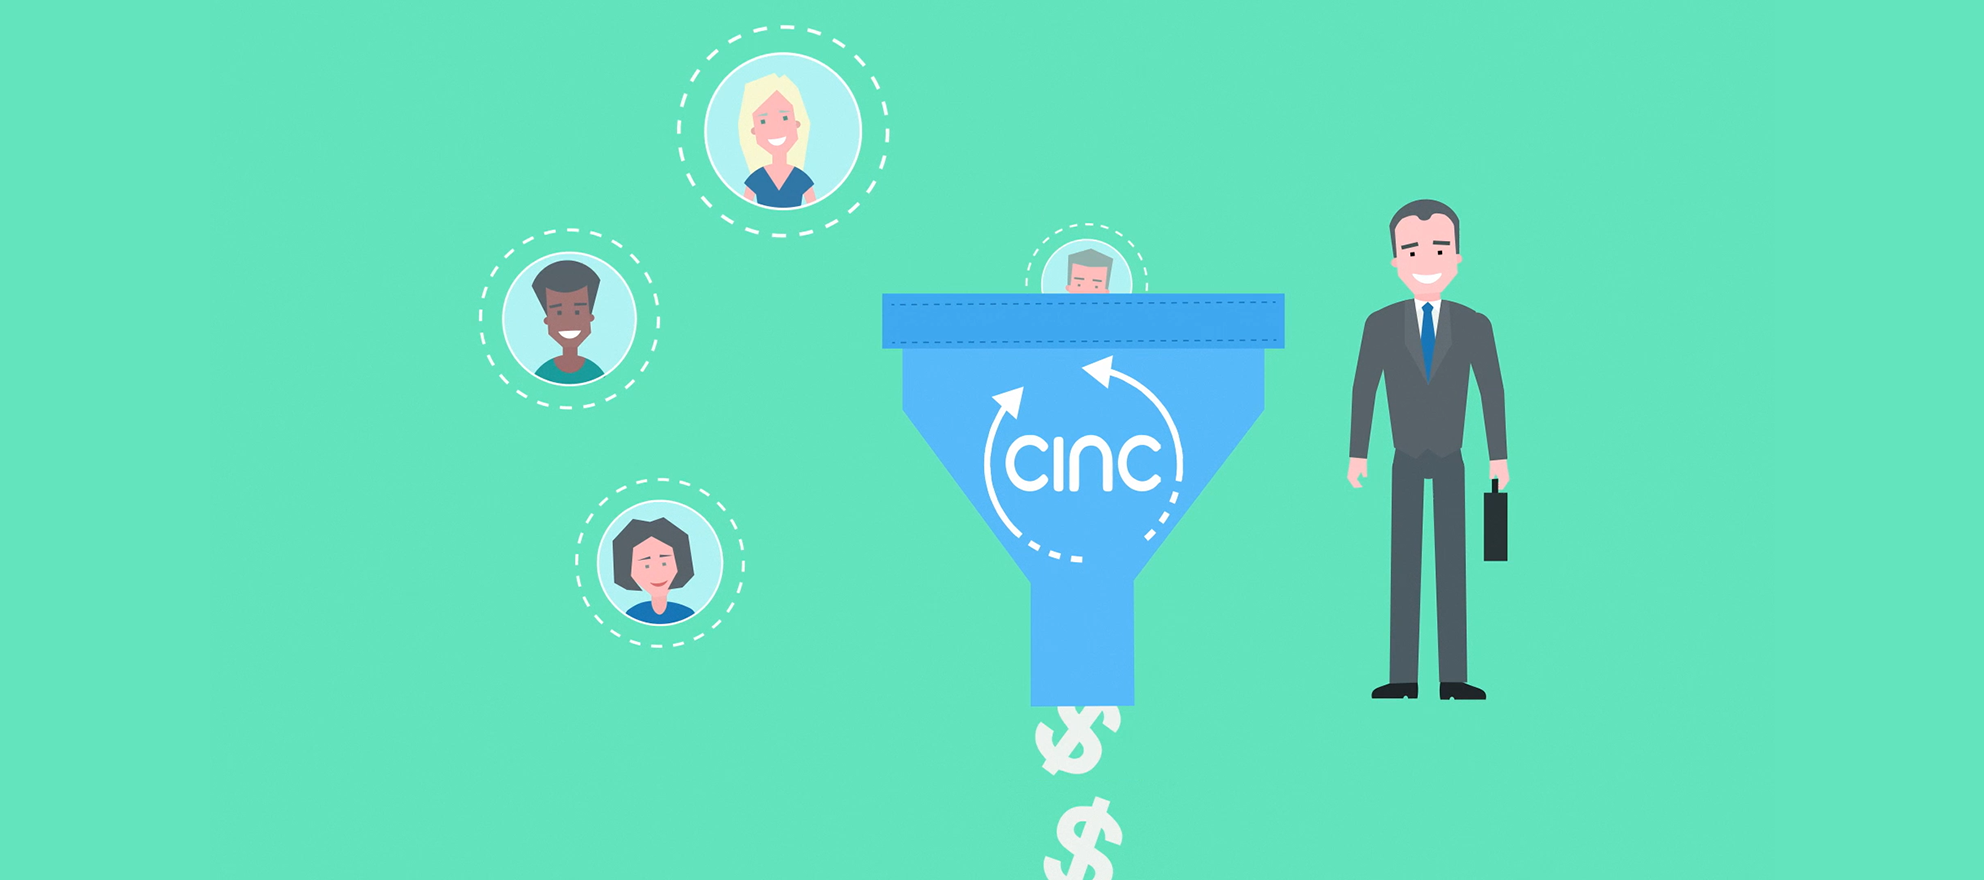 CINC Marketing and CRM Software